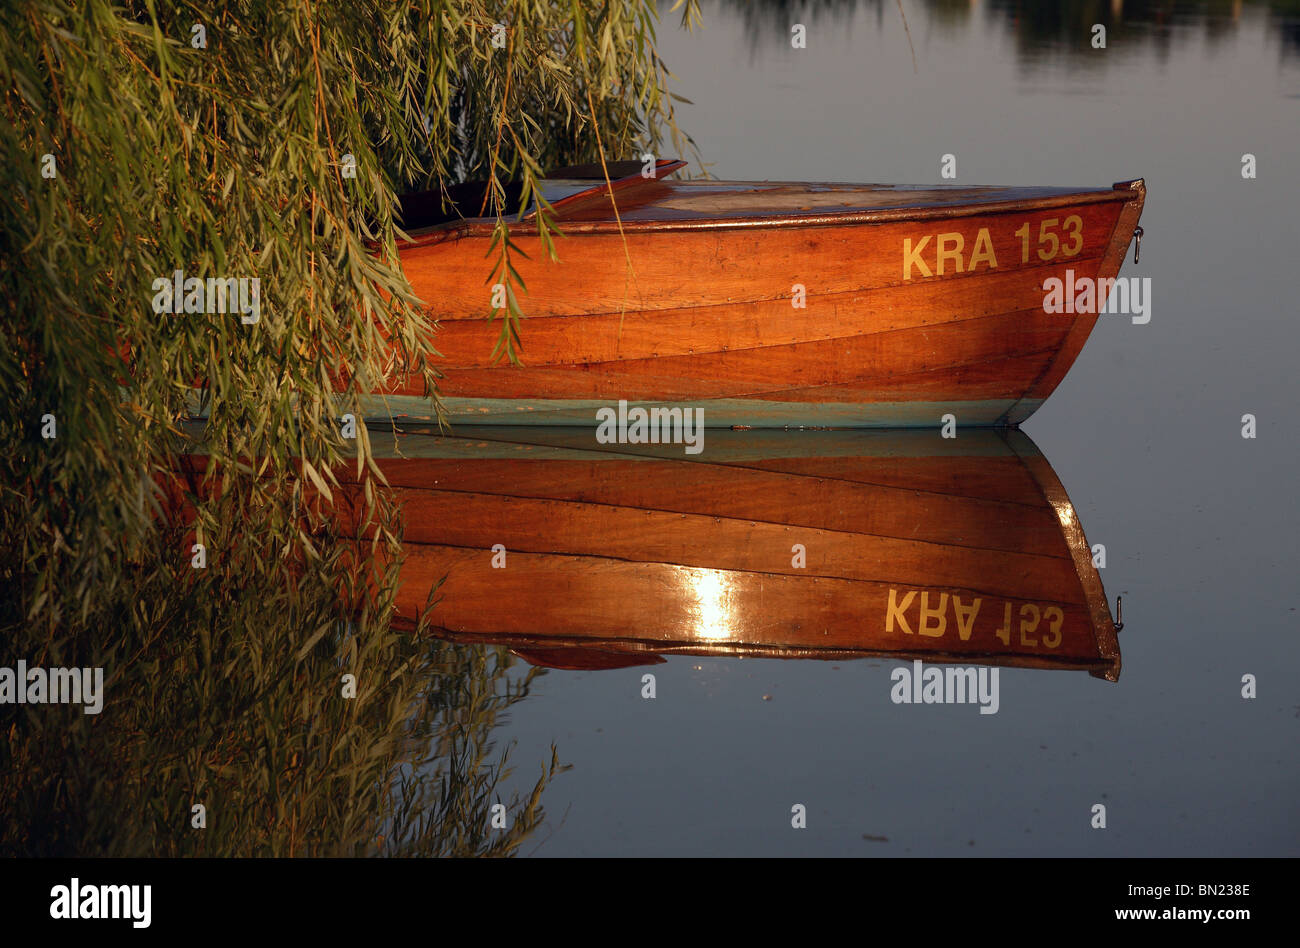 An empty wooden boat under a willow, Prangendorf, Germany Stock Photo